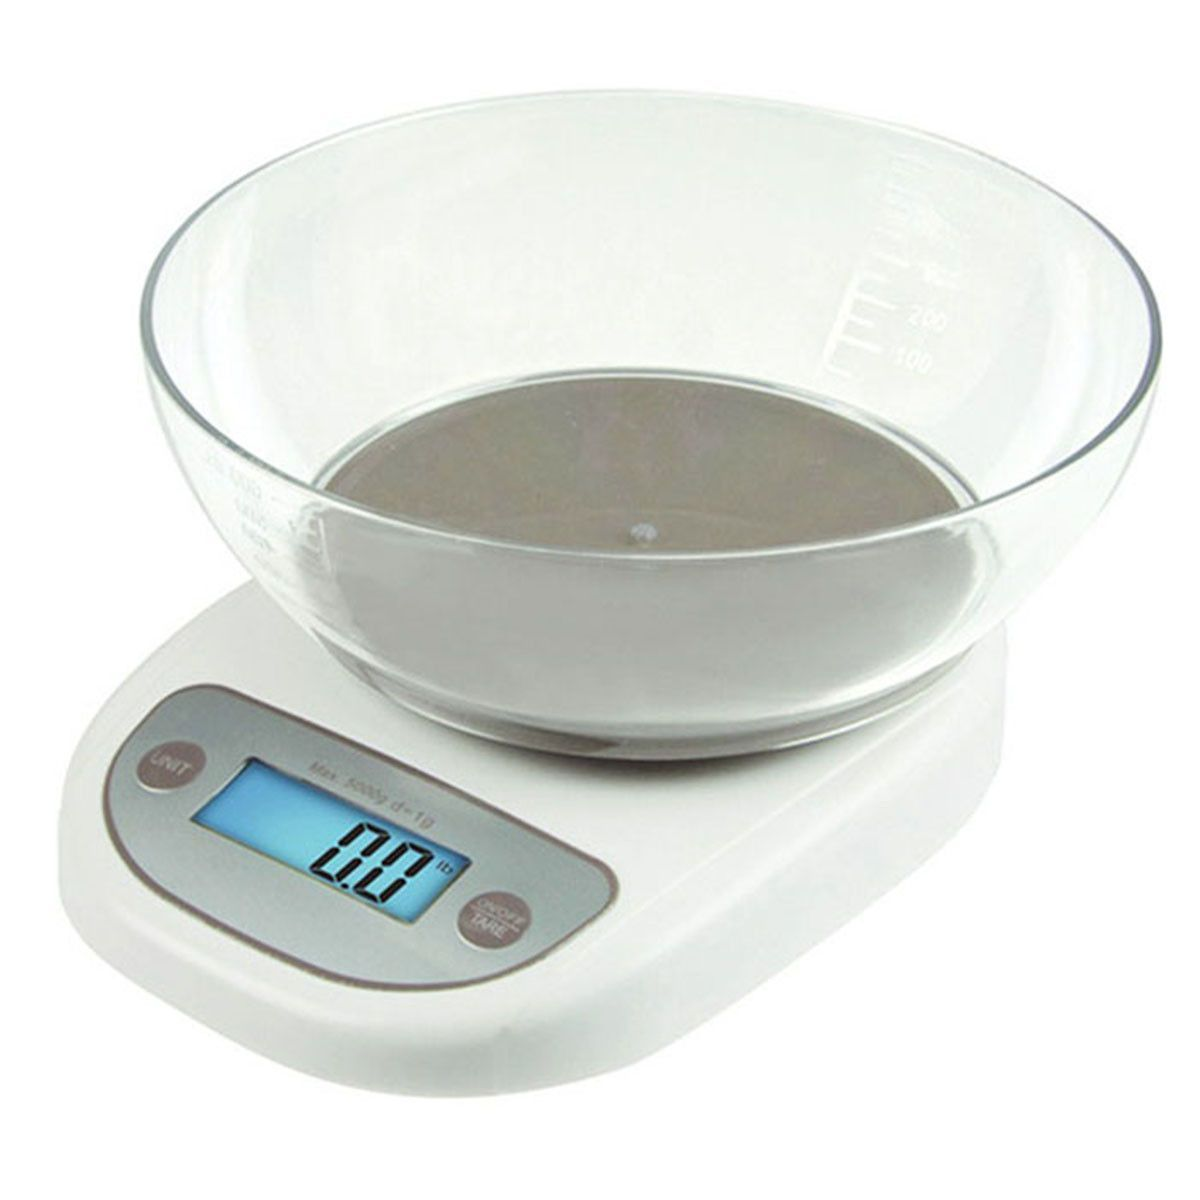 Precise Electronic Digital Kitchen Scale With Bowl Food Weighing Tool 0.1g    5kg